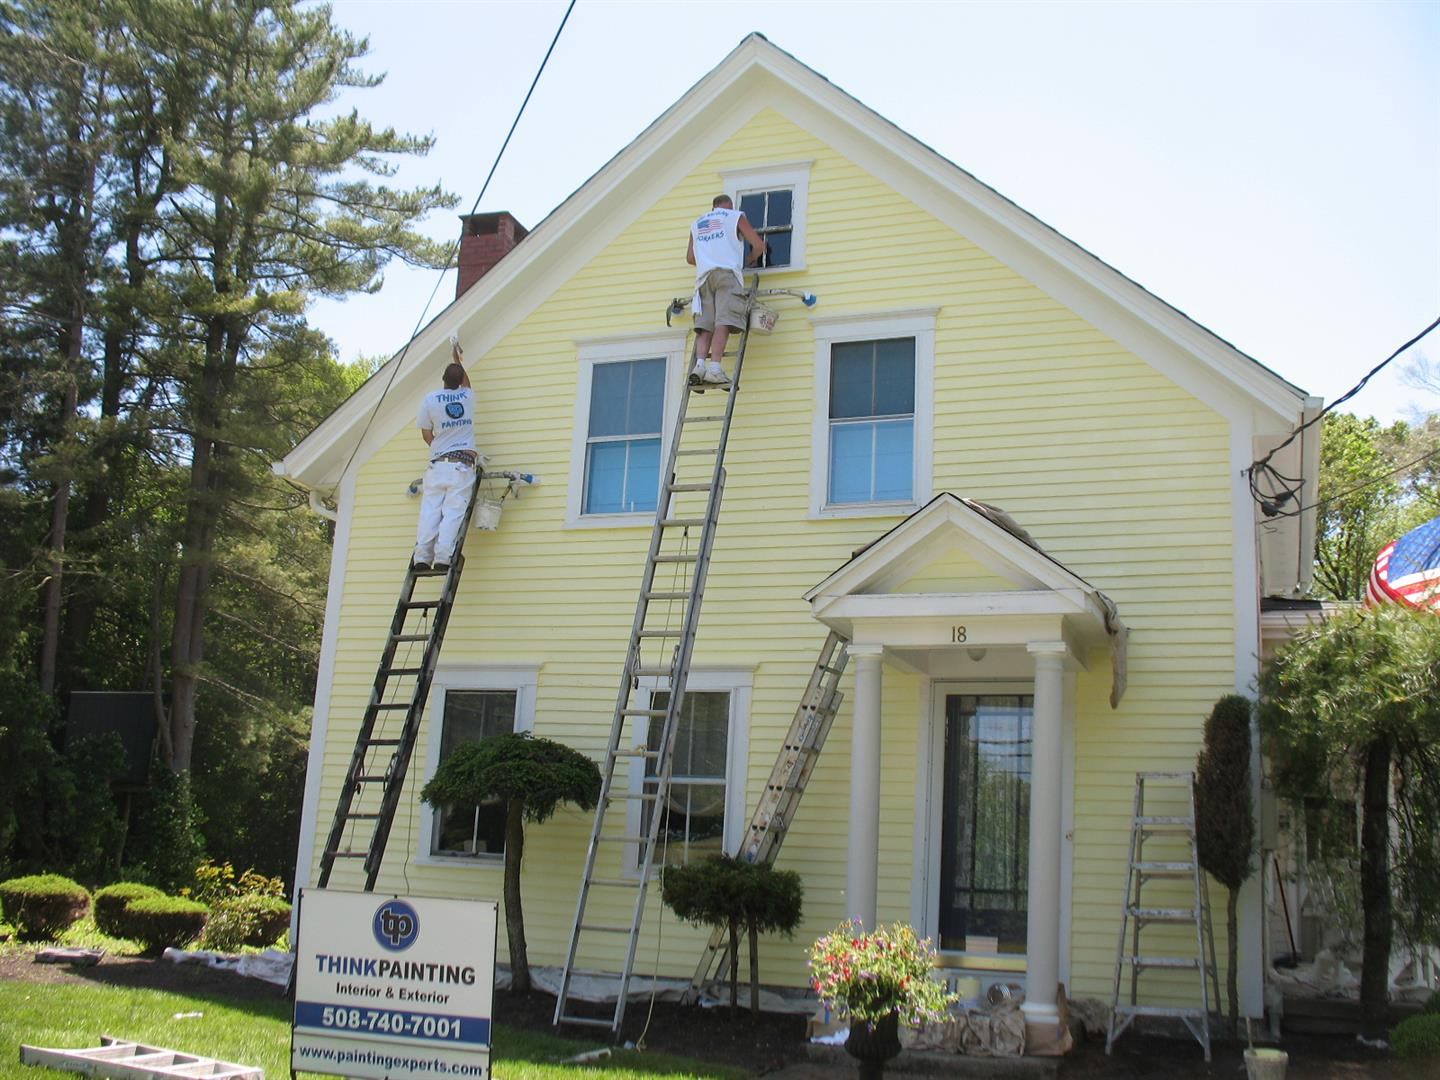 House painters in massachusetts and rhode island for Hire someone to decorate my house